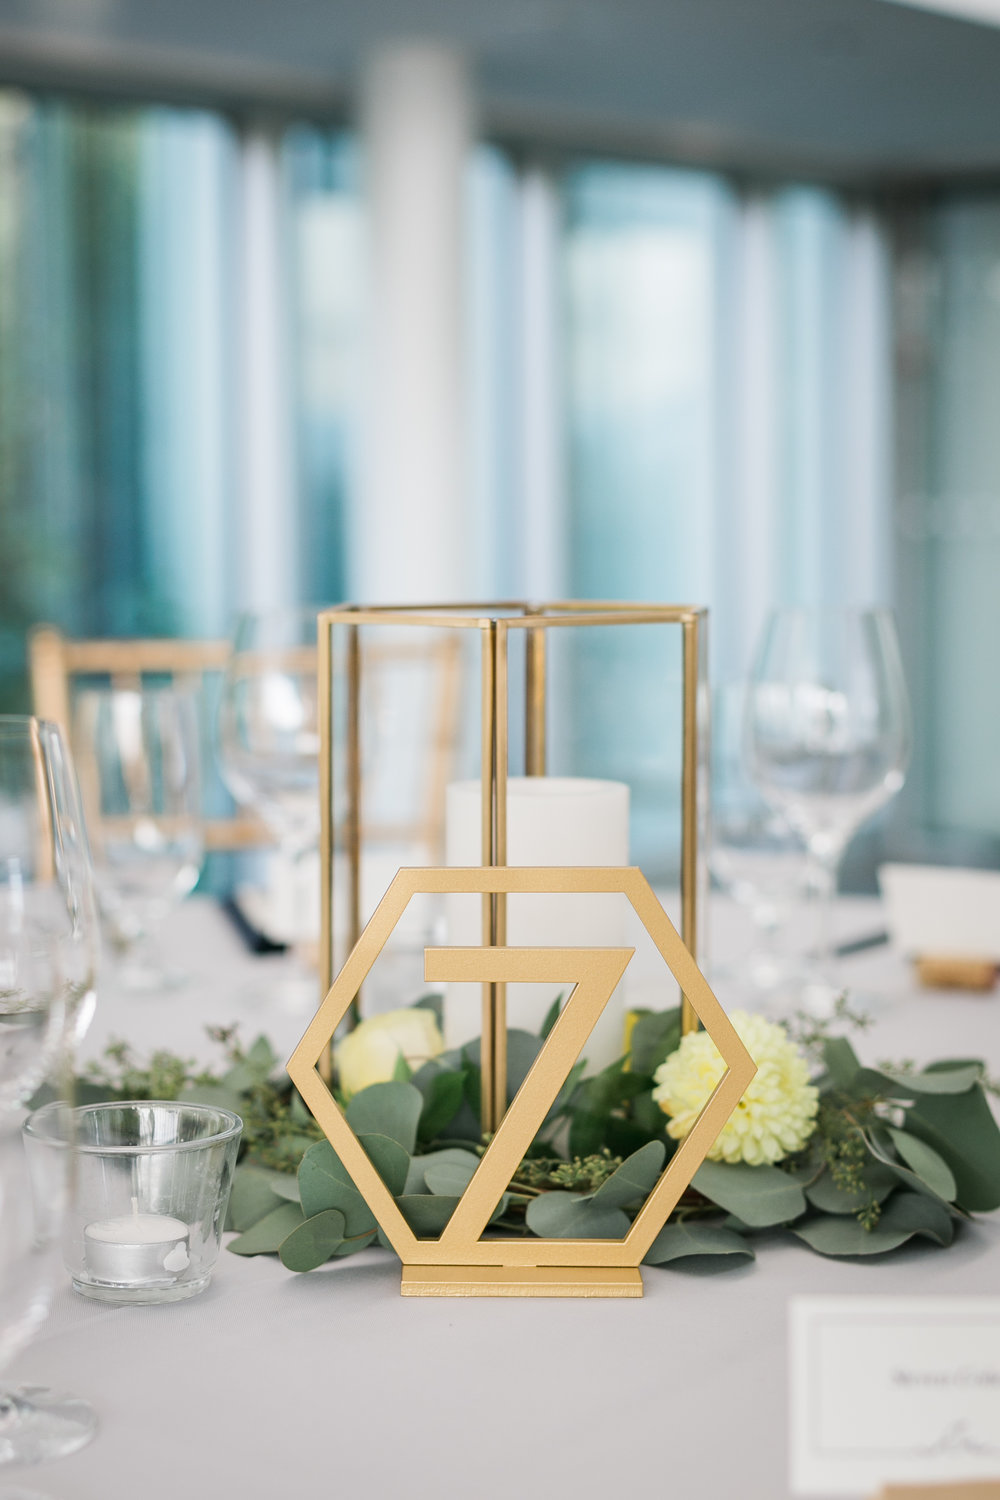 seattle-wedding-reception-party-geometric-candles-greenery-yellow-floral